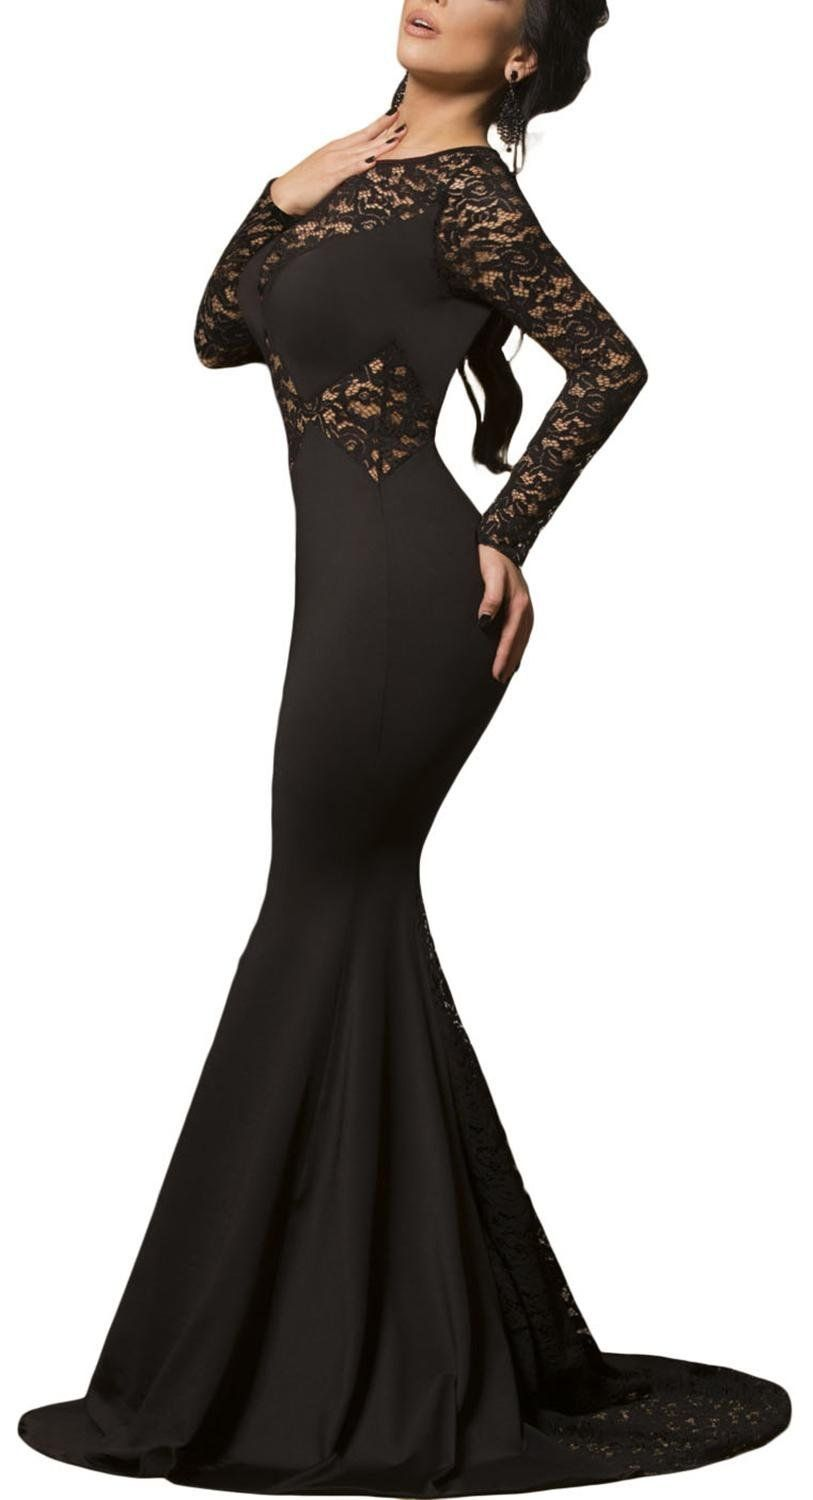 6a0ae491d867 IF FEEL Womens Black Lace Sleeve Sexy Mermaid Prom Evening Dress at Amazon  Women s Clothing store